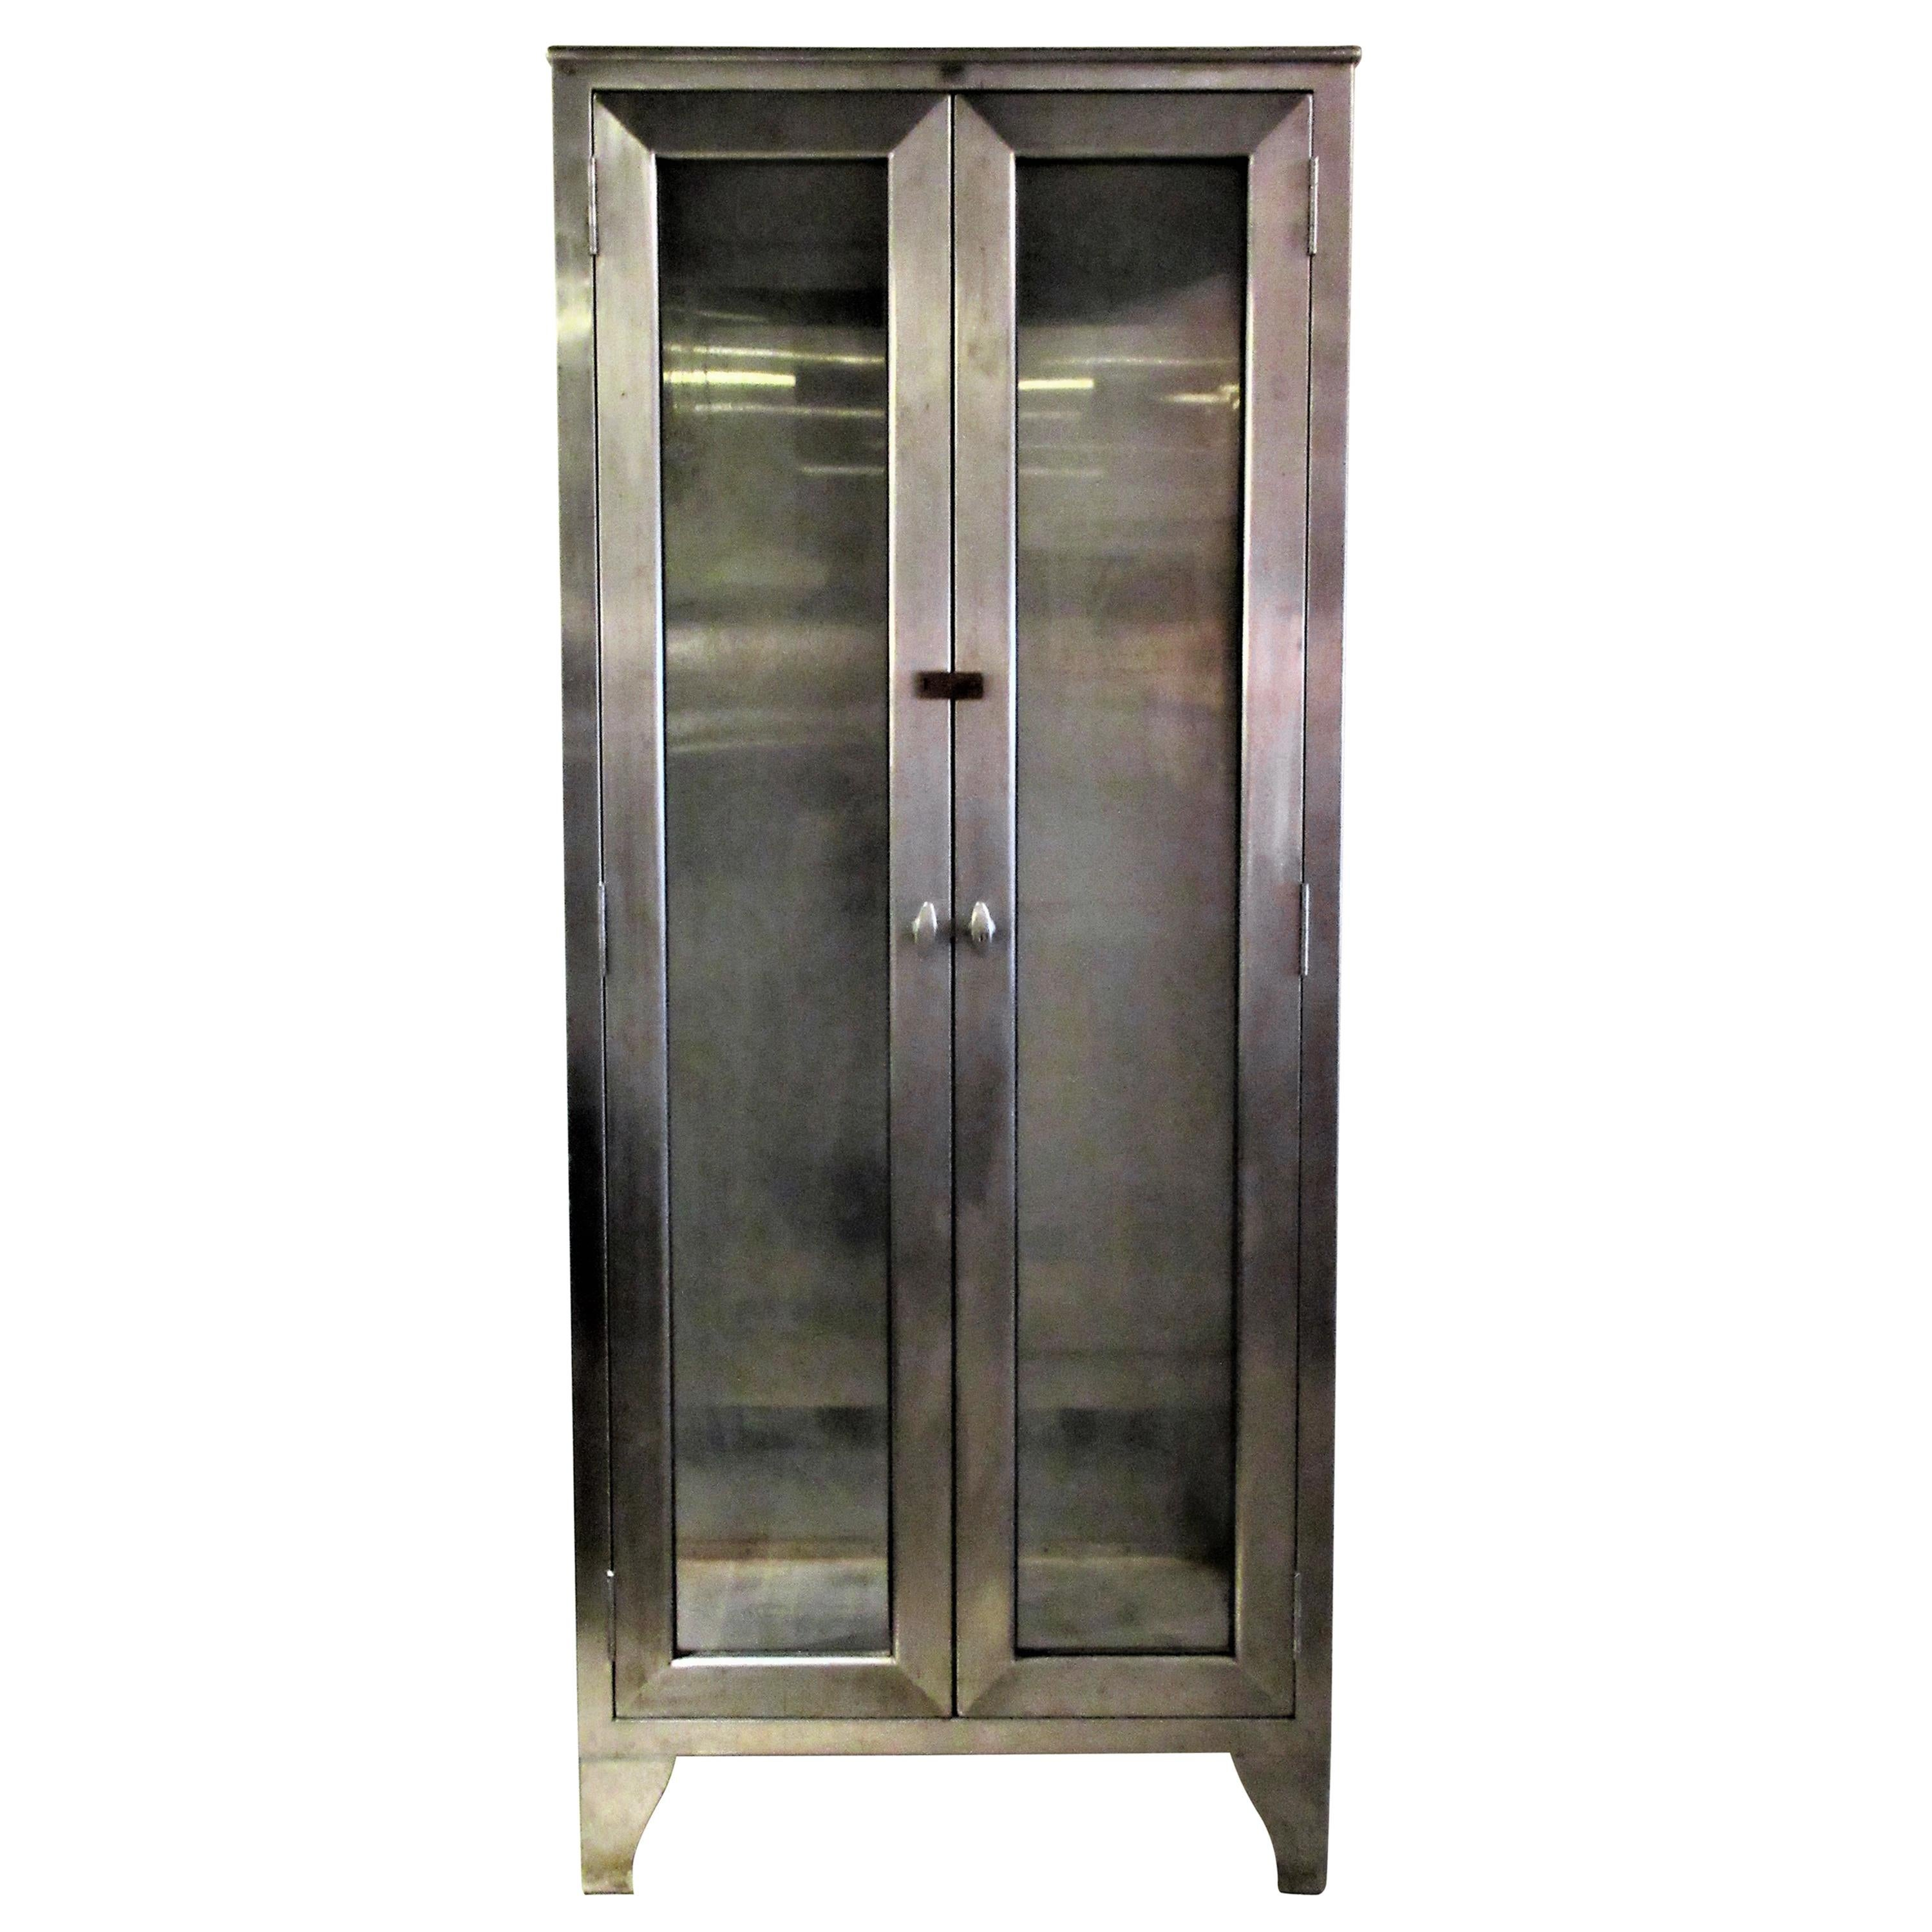 1940 s american stainless steel industrial medical cabinet for sale rh 1stdibs com used stainless steel medical cabinets stainless steel medicine cabinet